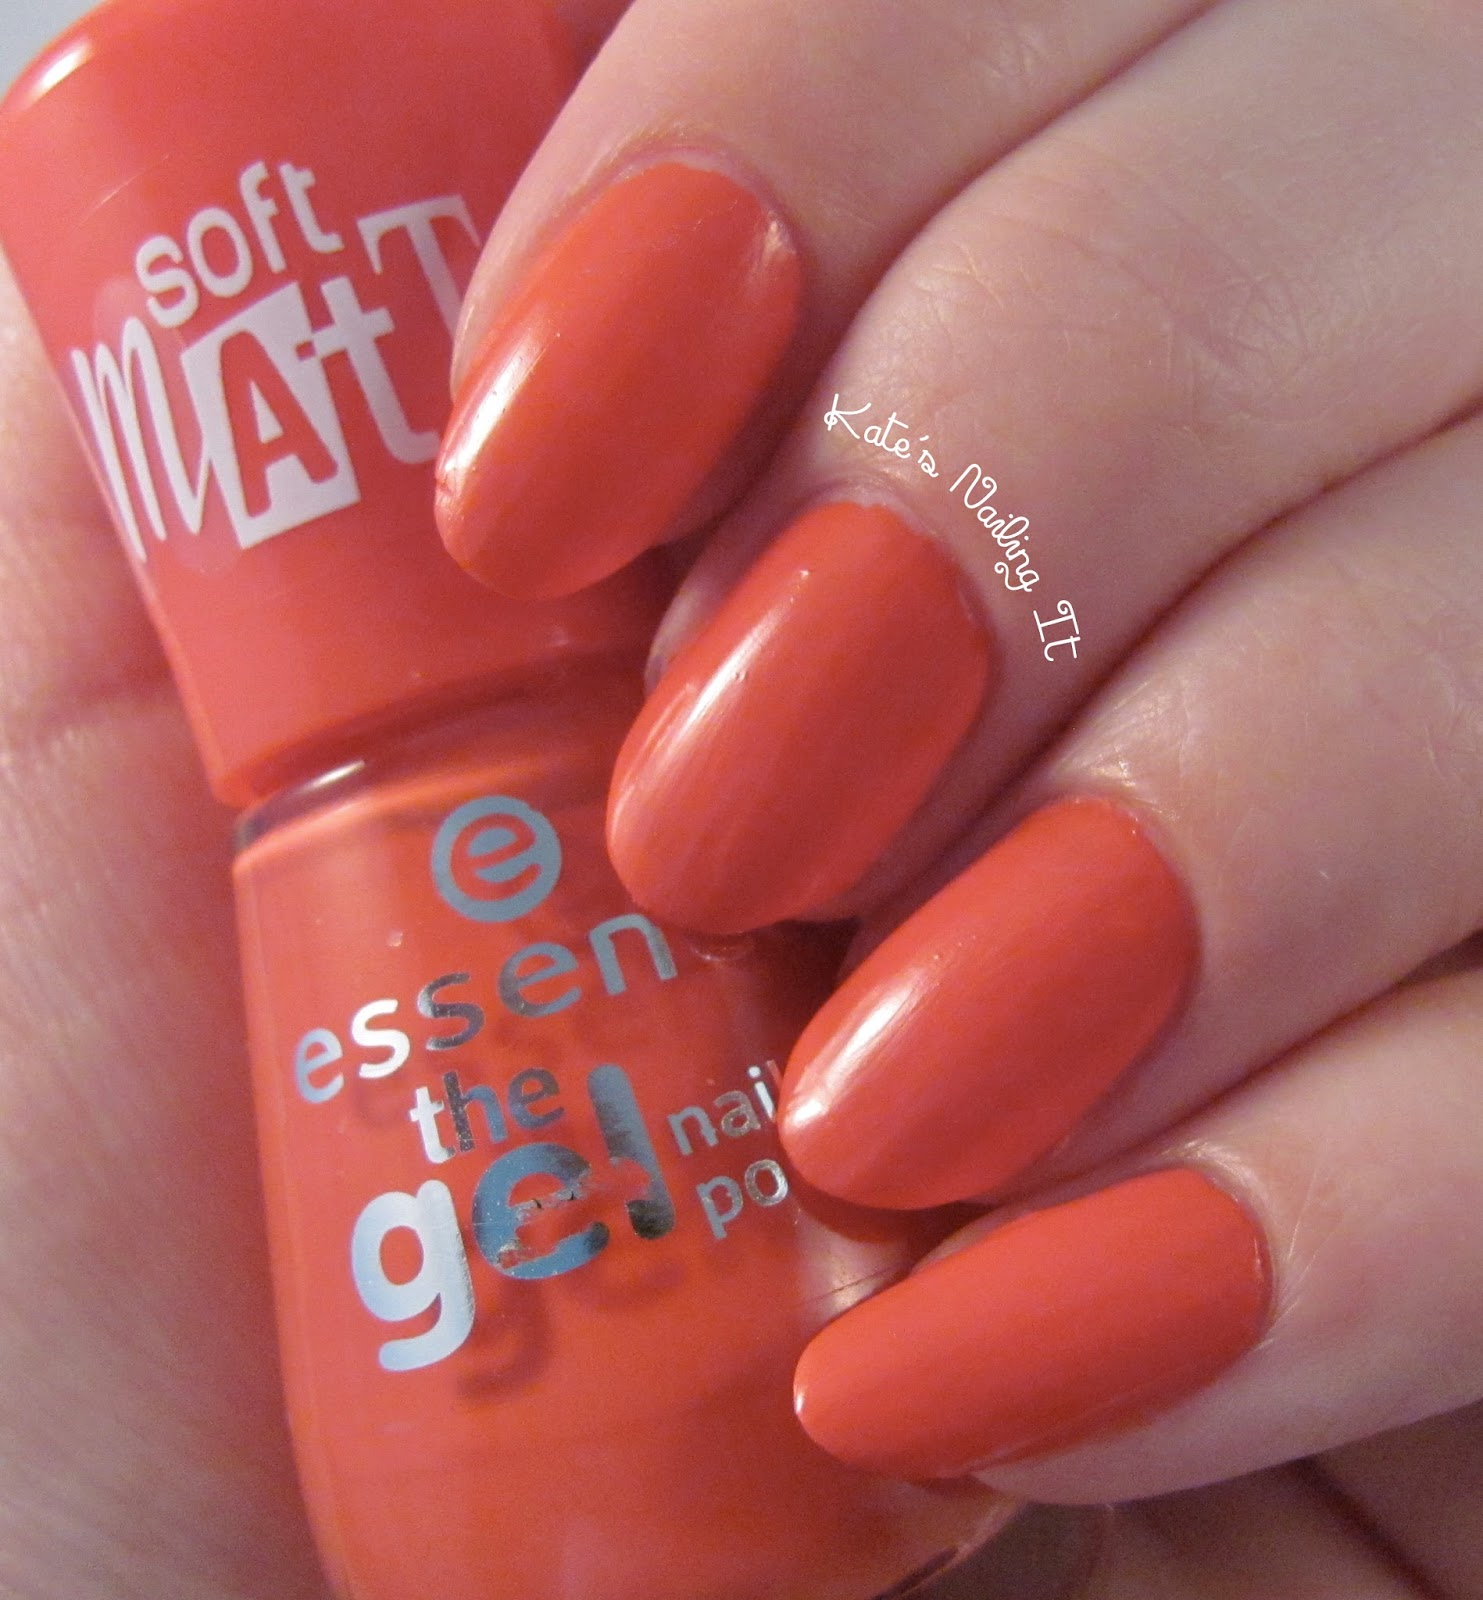 Kate\'s Nailing It: Essence: The Gel Nail Polish wear test